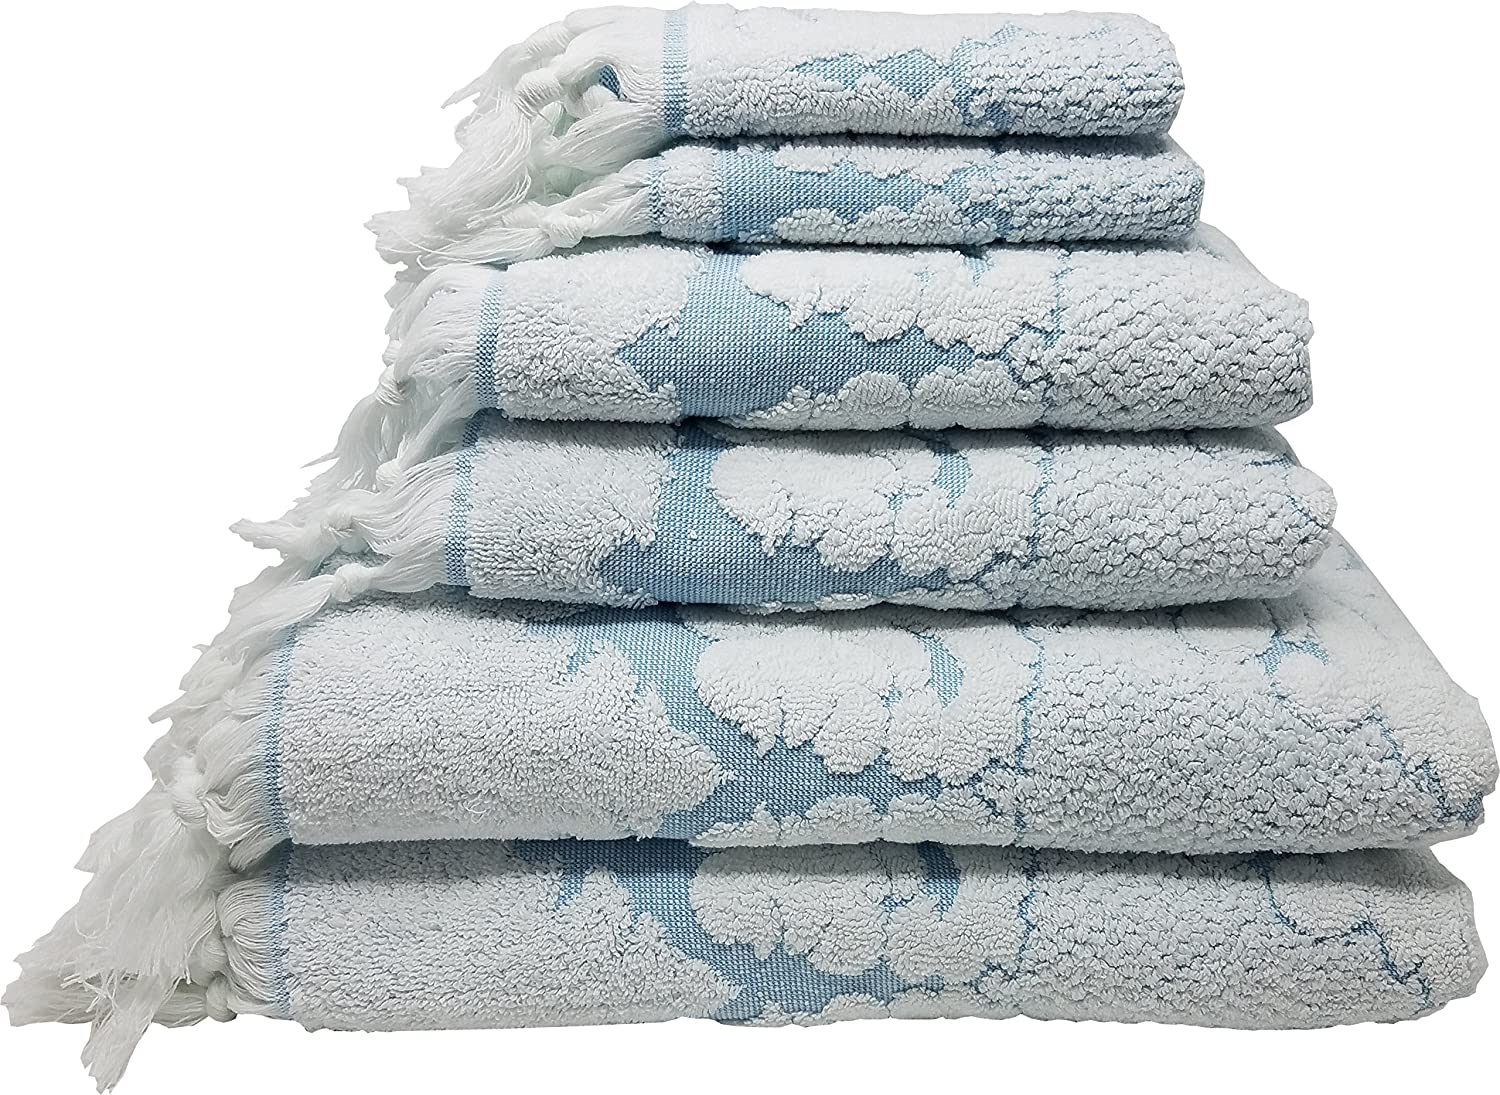 LUNASIDUS - Luxury Decorative Bath Towels